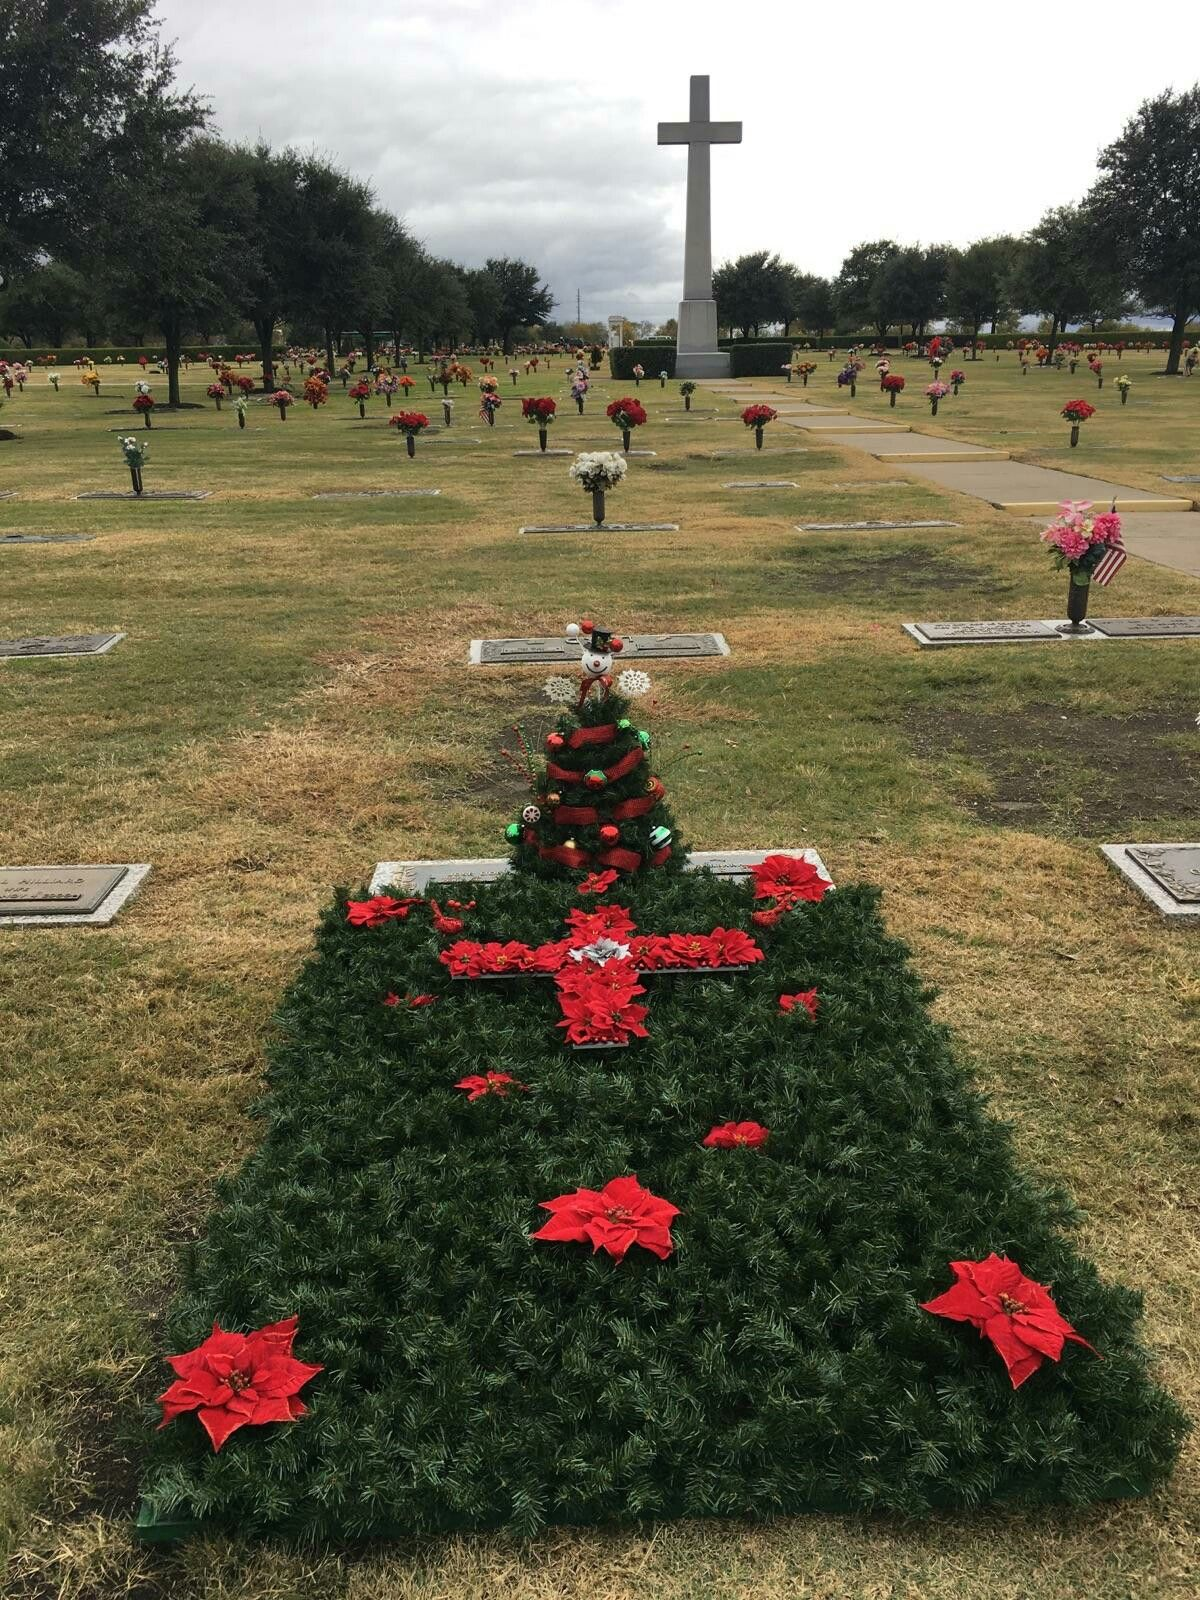 Christmas Blanket left for our loved ones at their gravesite! Made from 2x4's & garland!